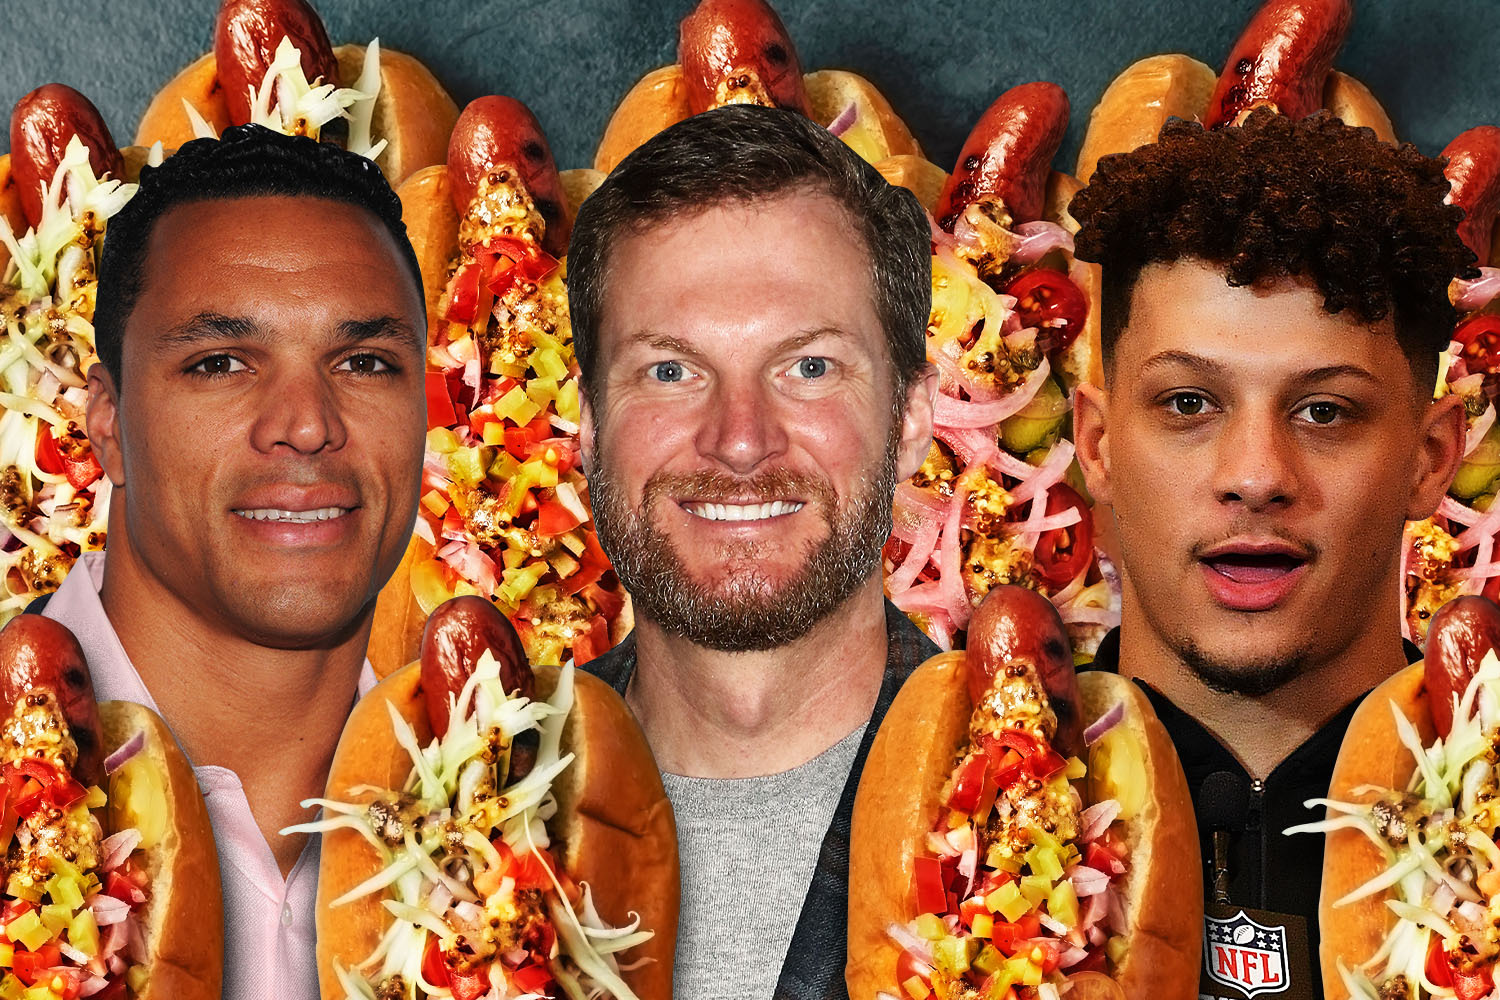 Three of our hot dog panelists, Tony Gonzalez, Dale Earnhardt and Patrick Mahomes.